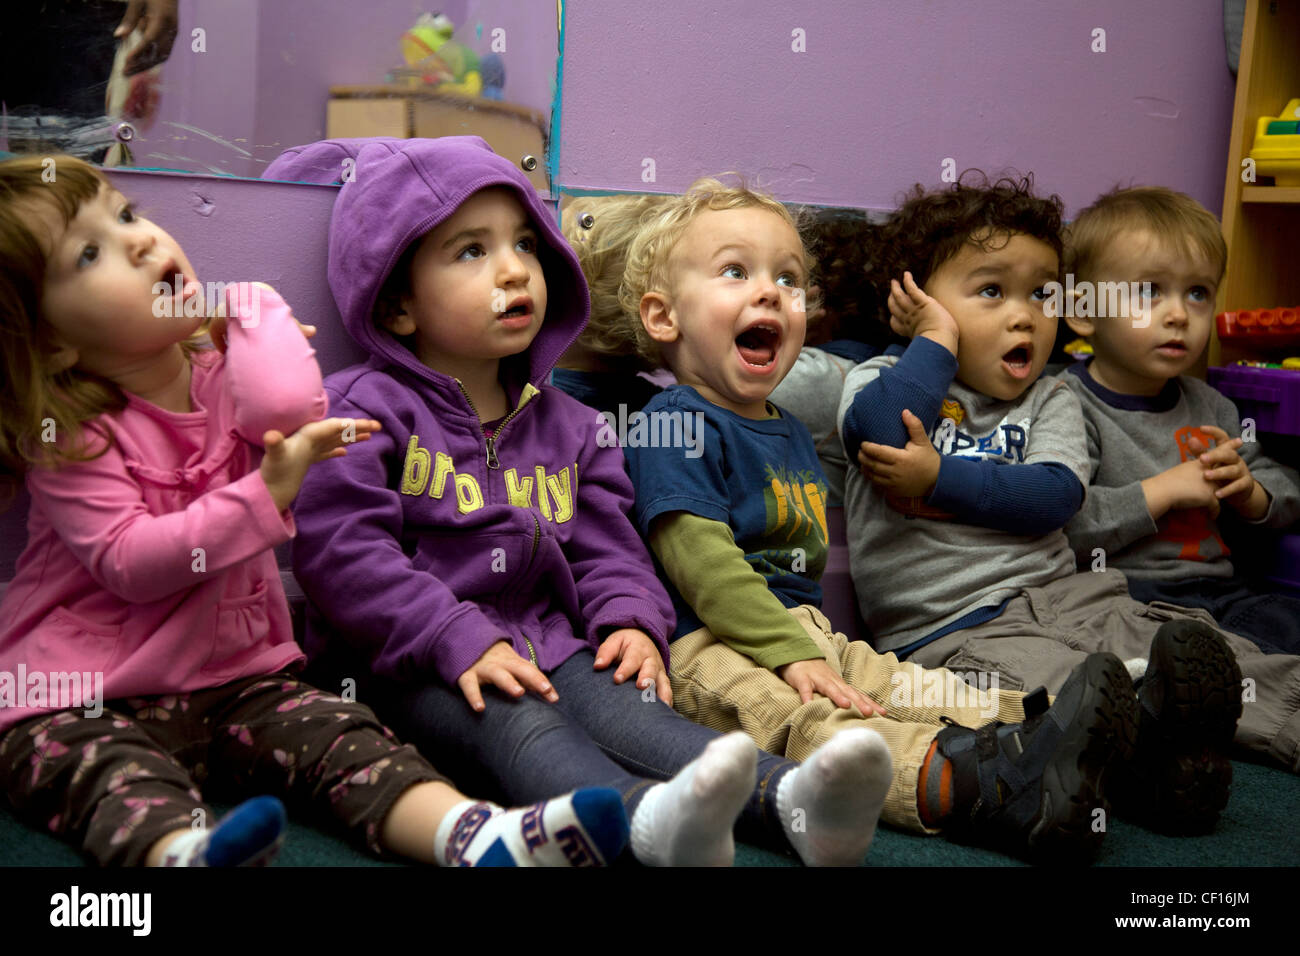 Kids Are Us Nursery school/early learning center in the highly multicultural Kensington neighborhood of Brooklyn, Stock Photo